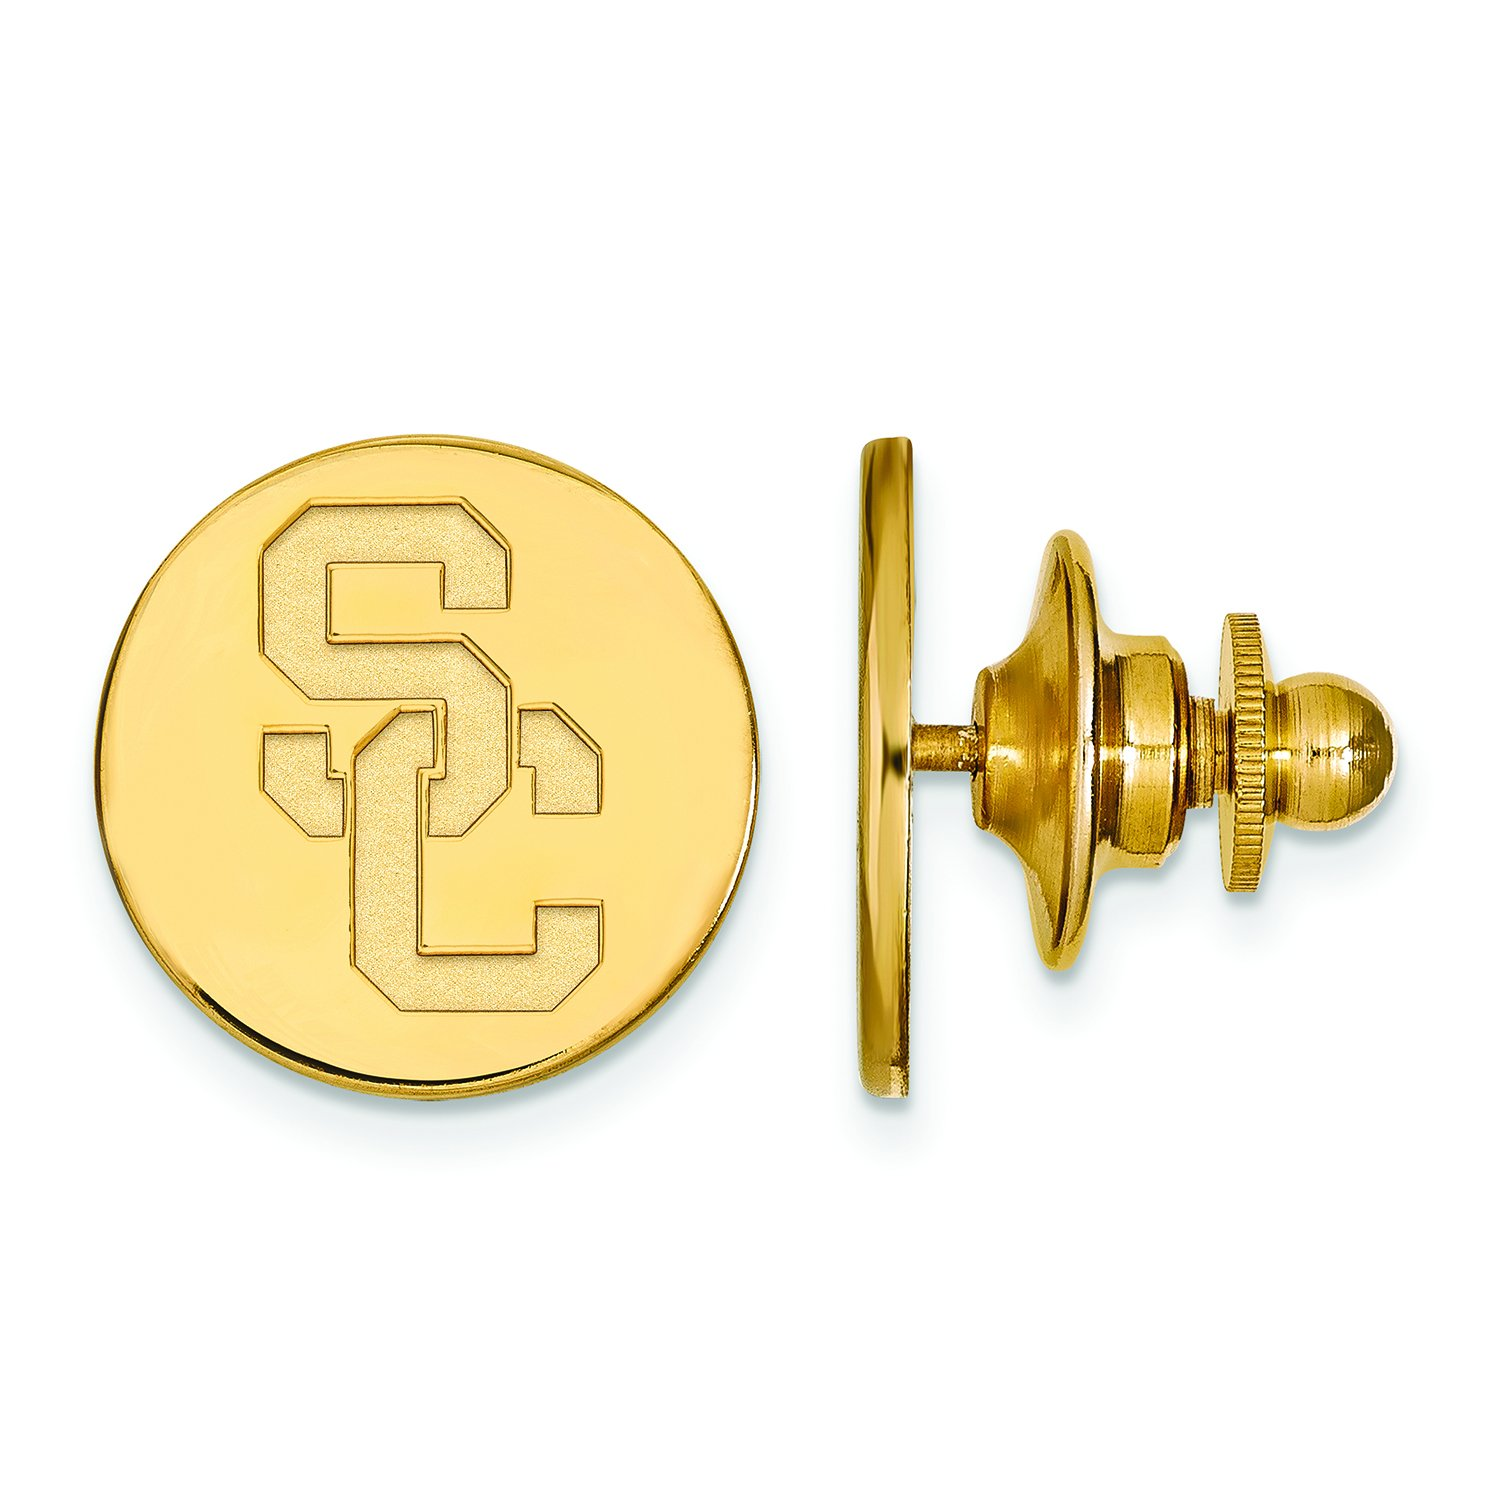 4Y010USC 14K Yellow Gold University of Southern California Tie Tac by LogoArt